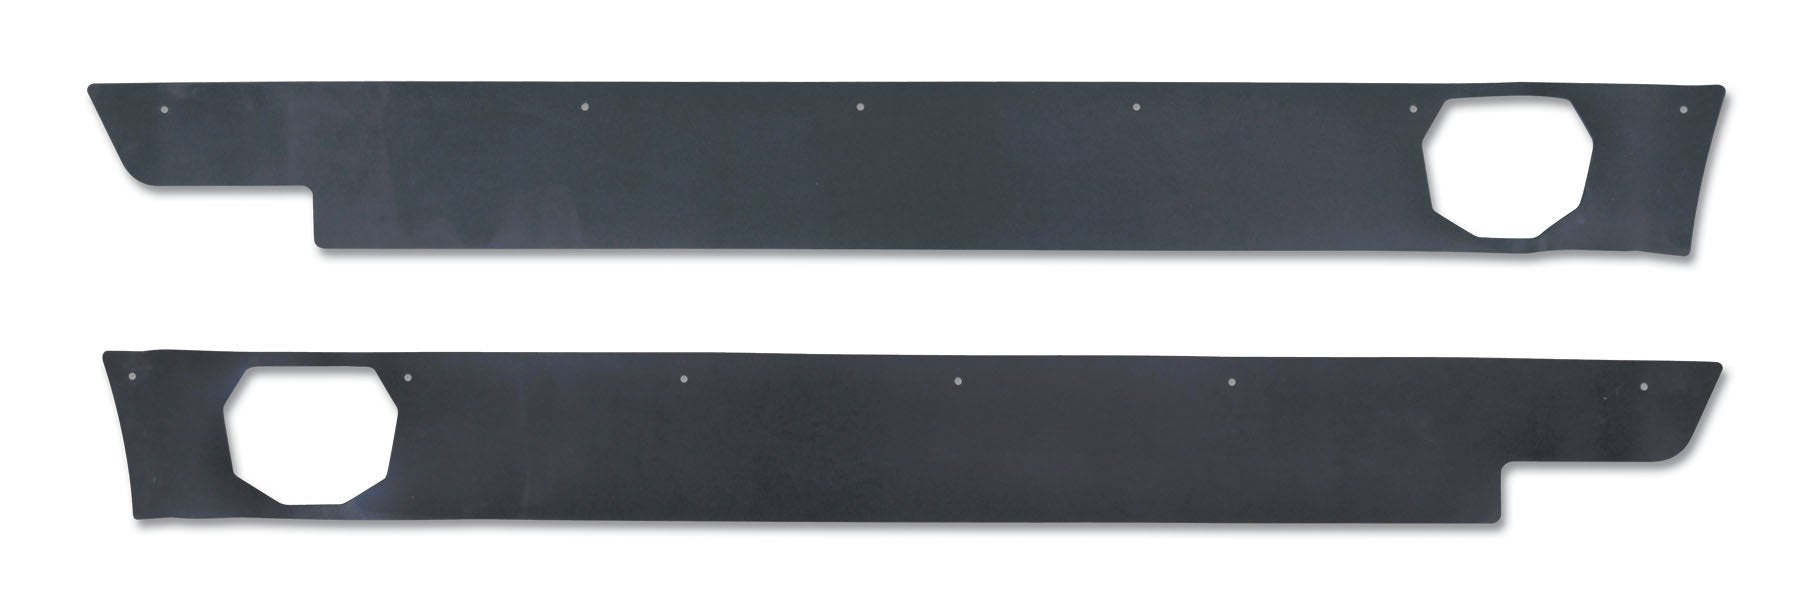 CJ5 Rubber Liners Pair 10-08-310 Poison Spyder